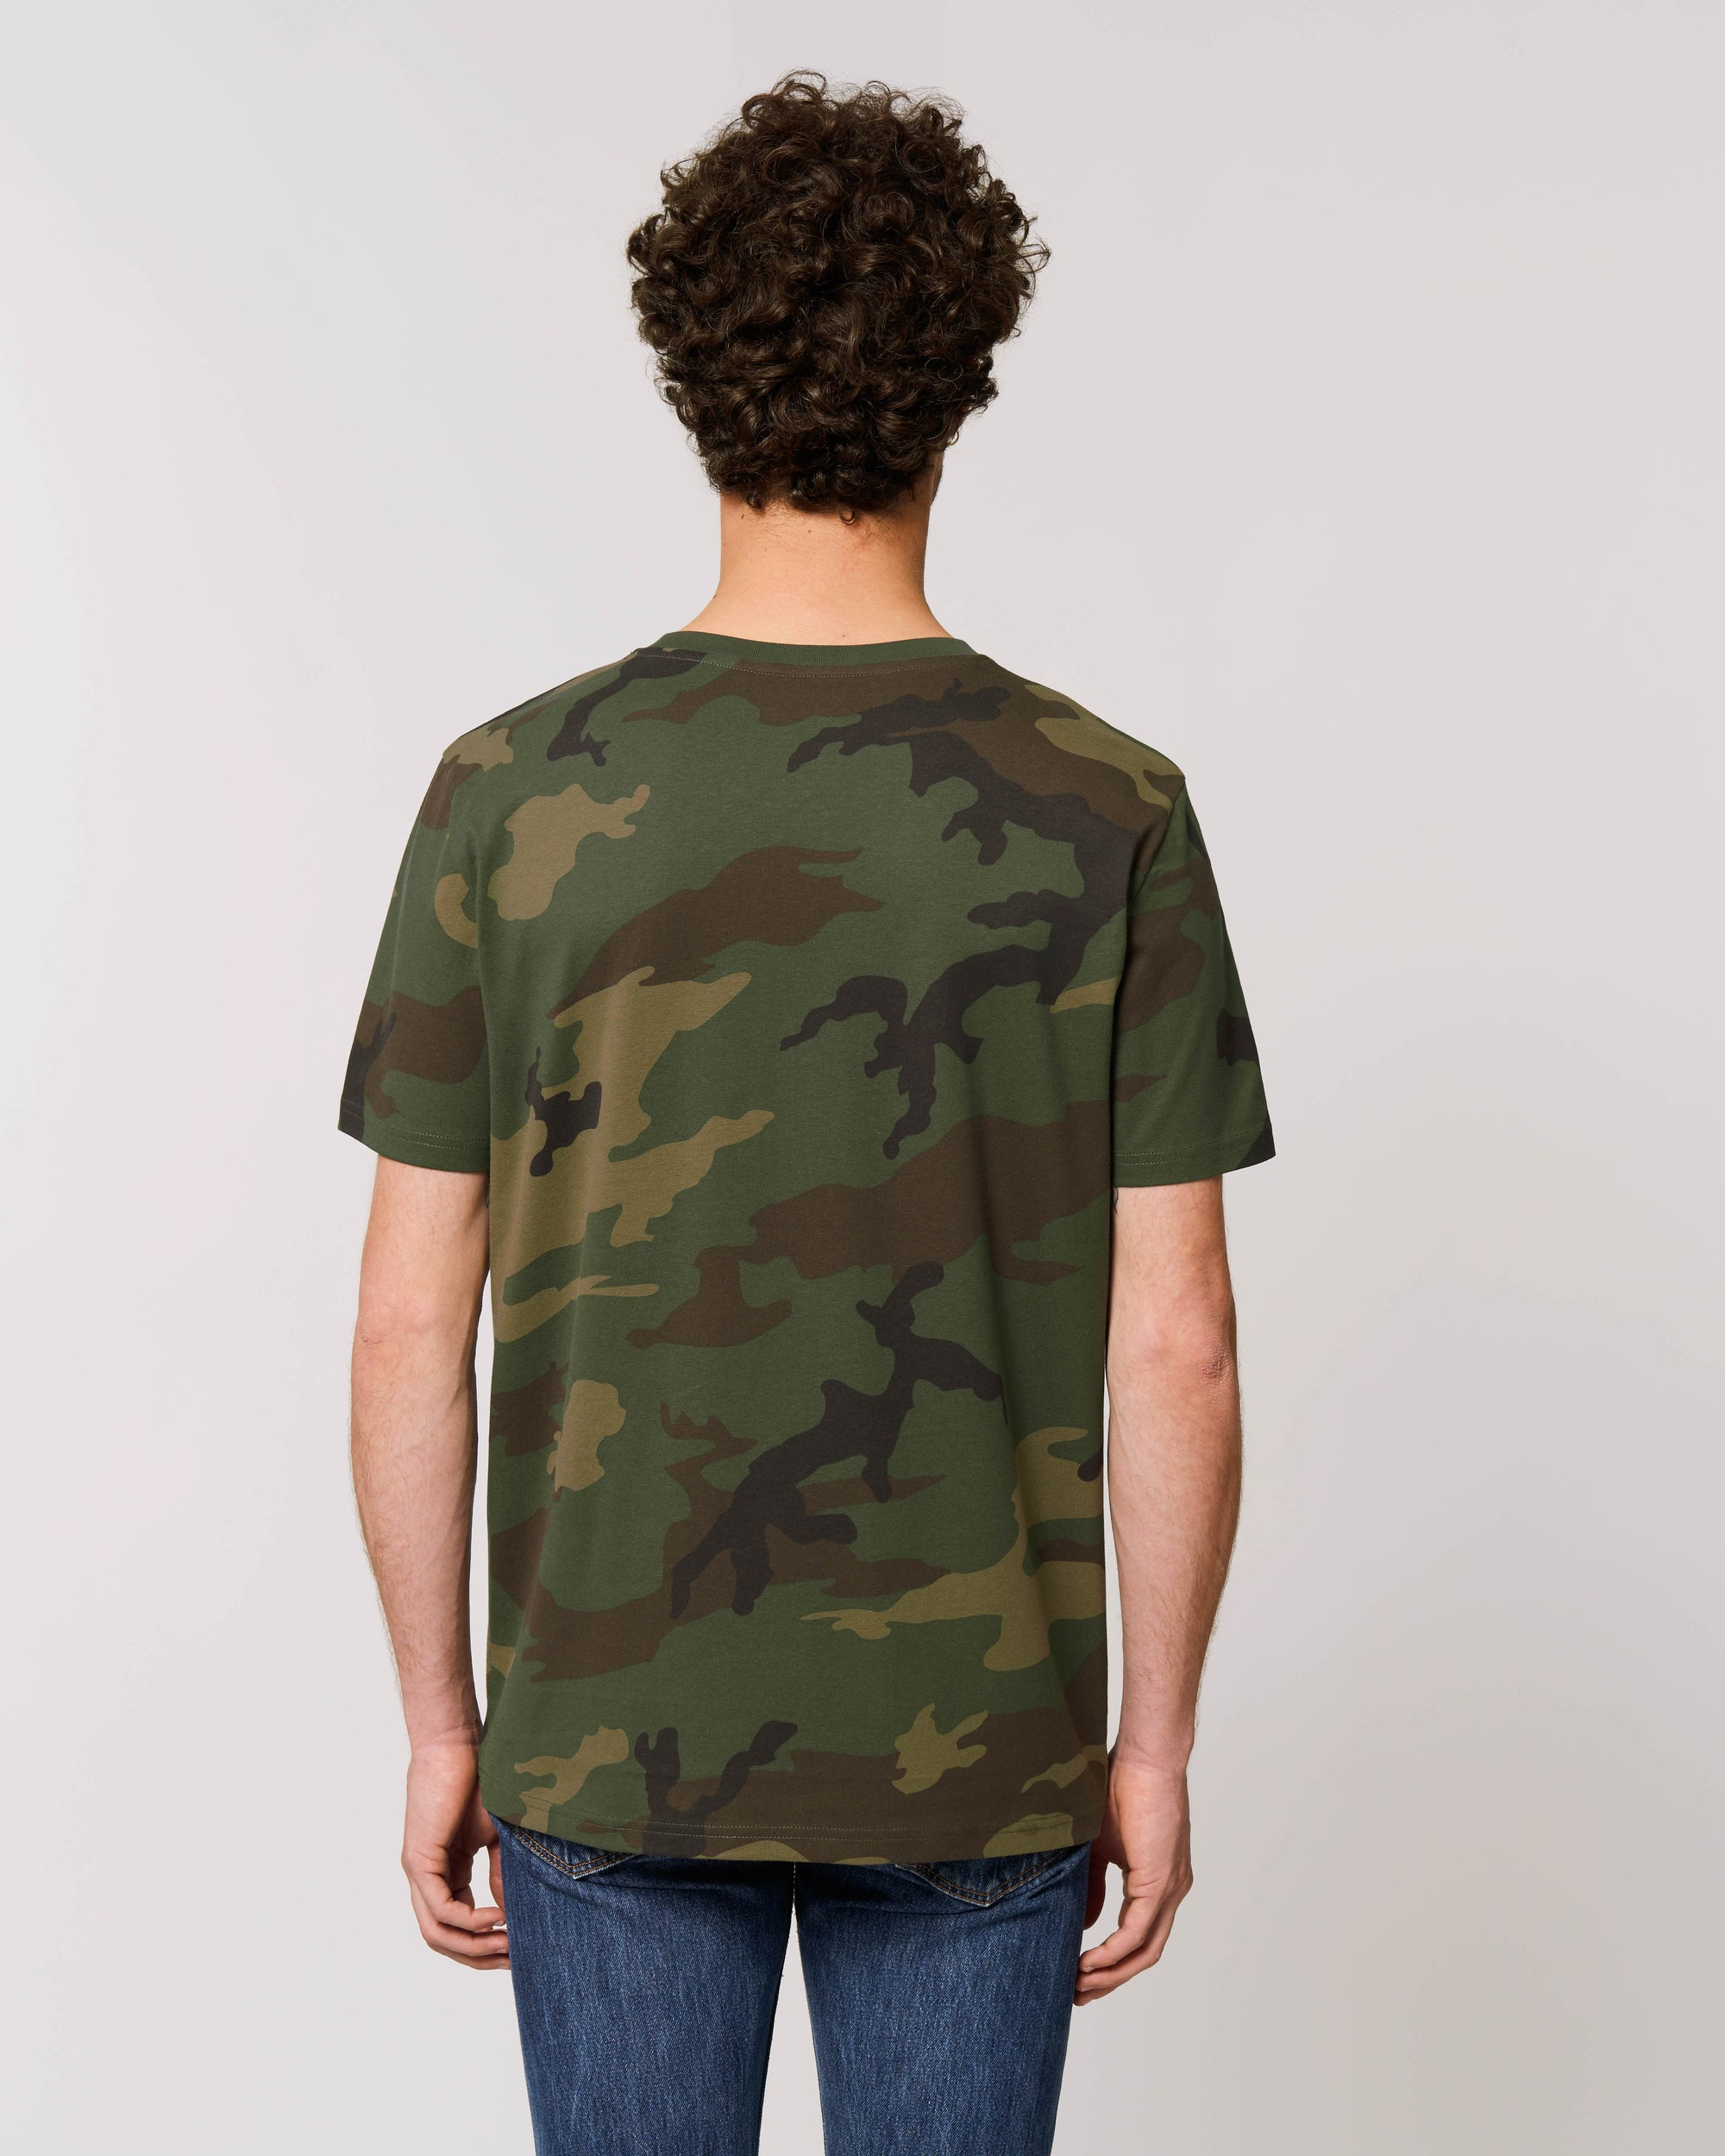 'LUST FOR LIFE' EMBROIDERED UNISEX CAMO PRINT ORGANIC COTTON T-SHIRT